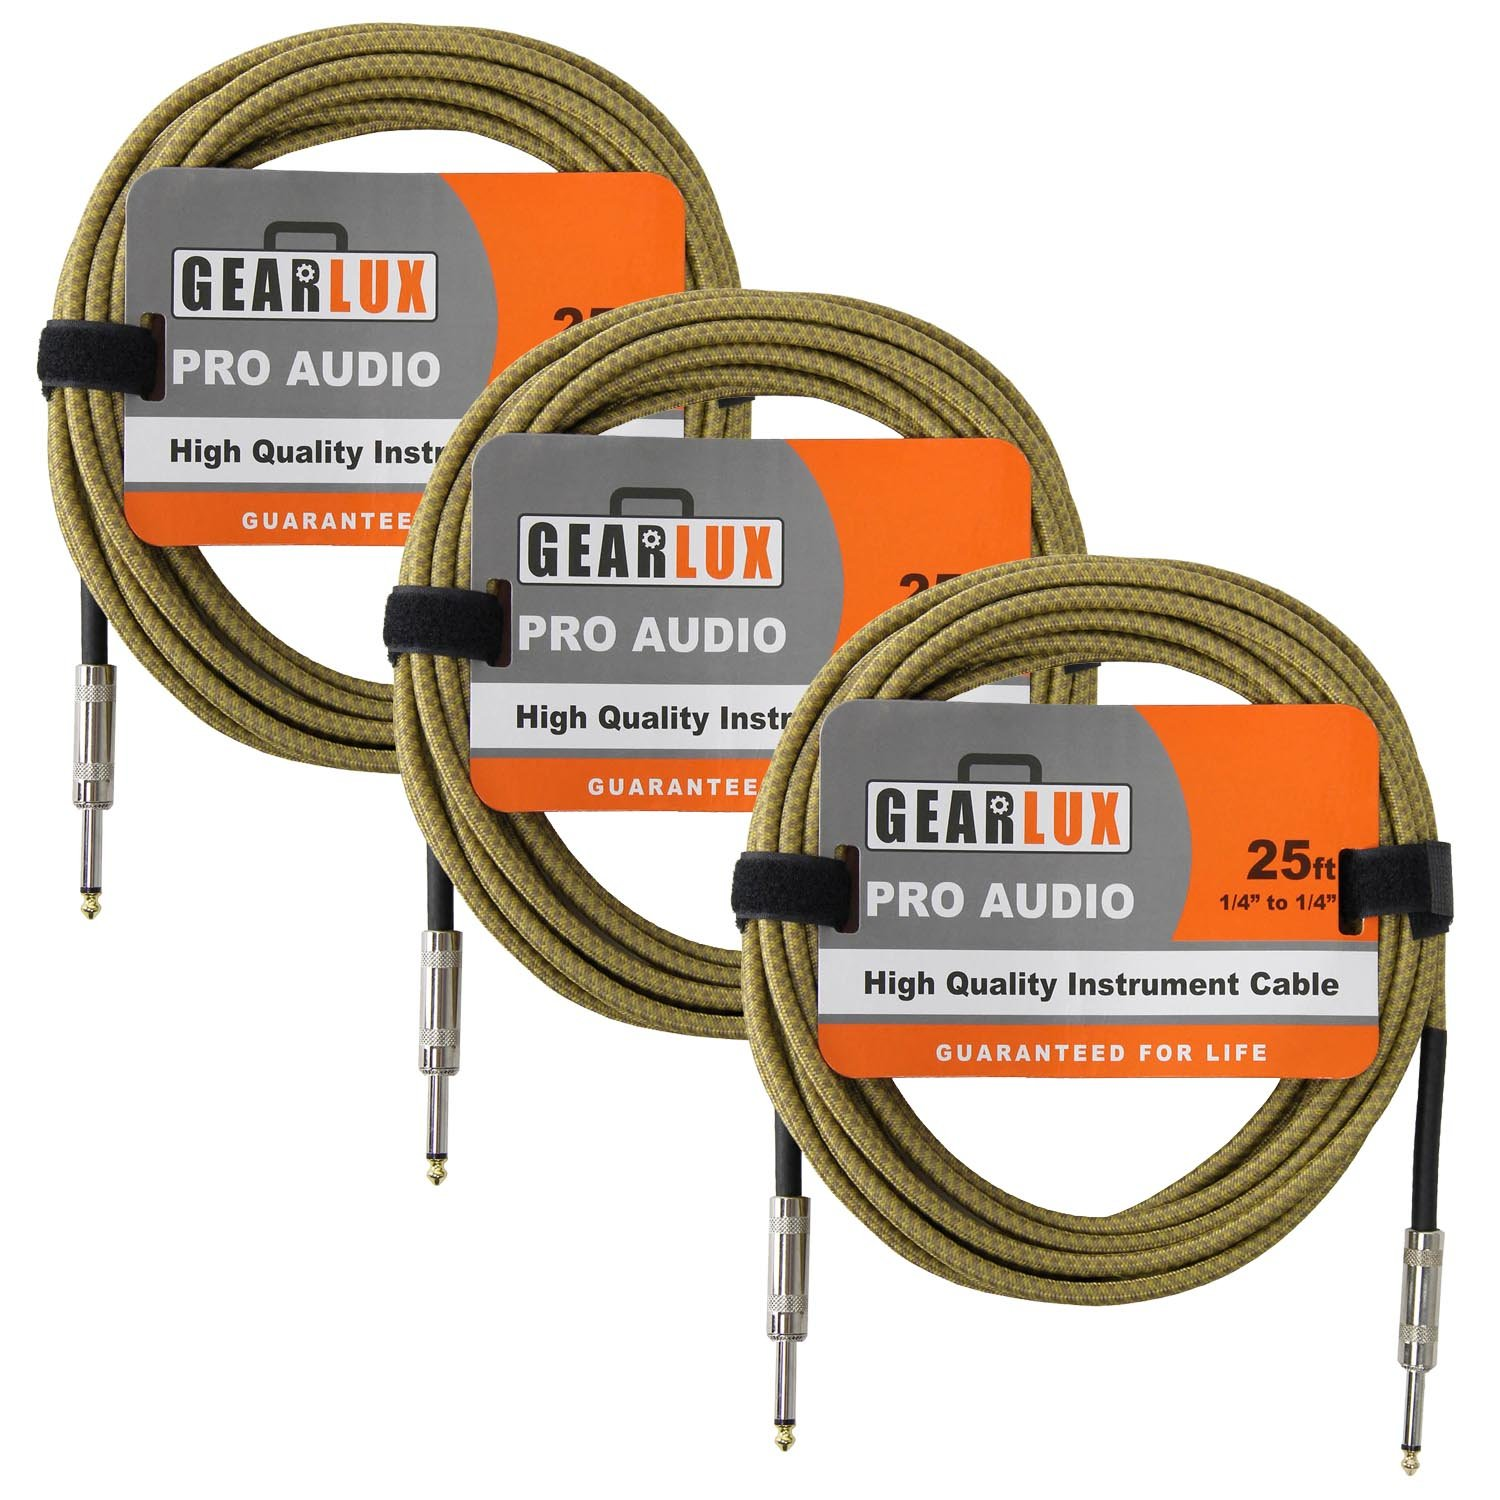 Gearlux High-Quality 25-Foot 1/4-Inch to 1/4-Inch Pro Audio Noiseless Instrument Cable with Oxygen-Free Copper Conductor - Tweed - 3 Cables